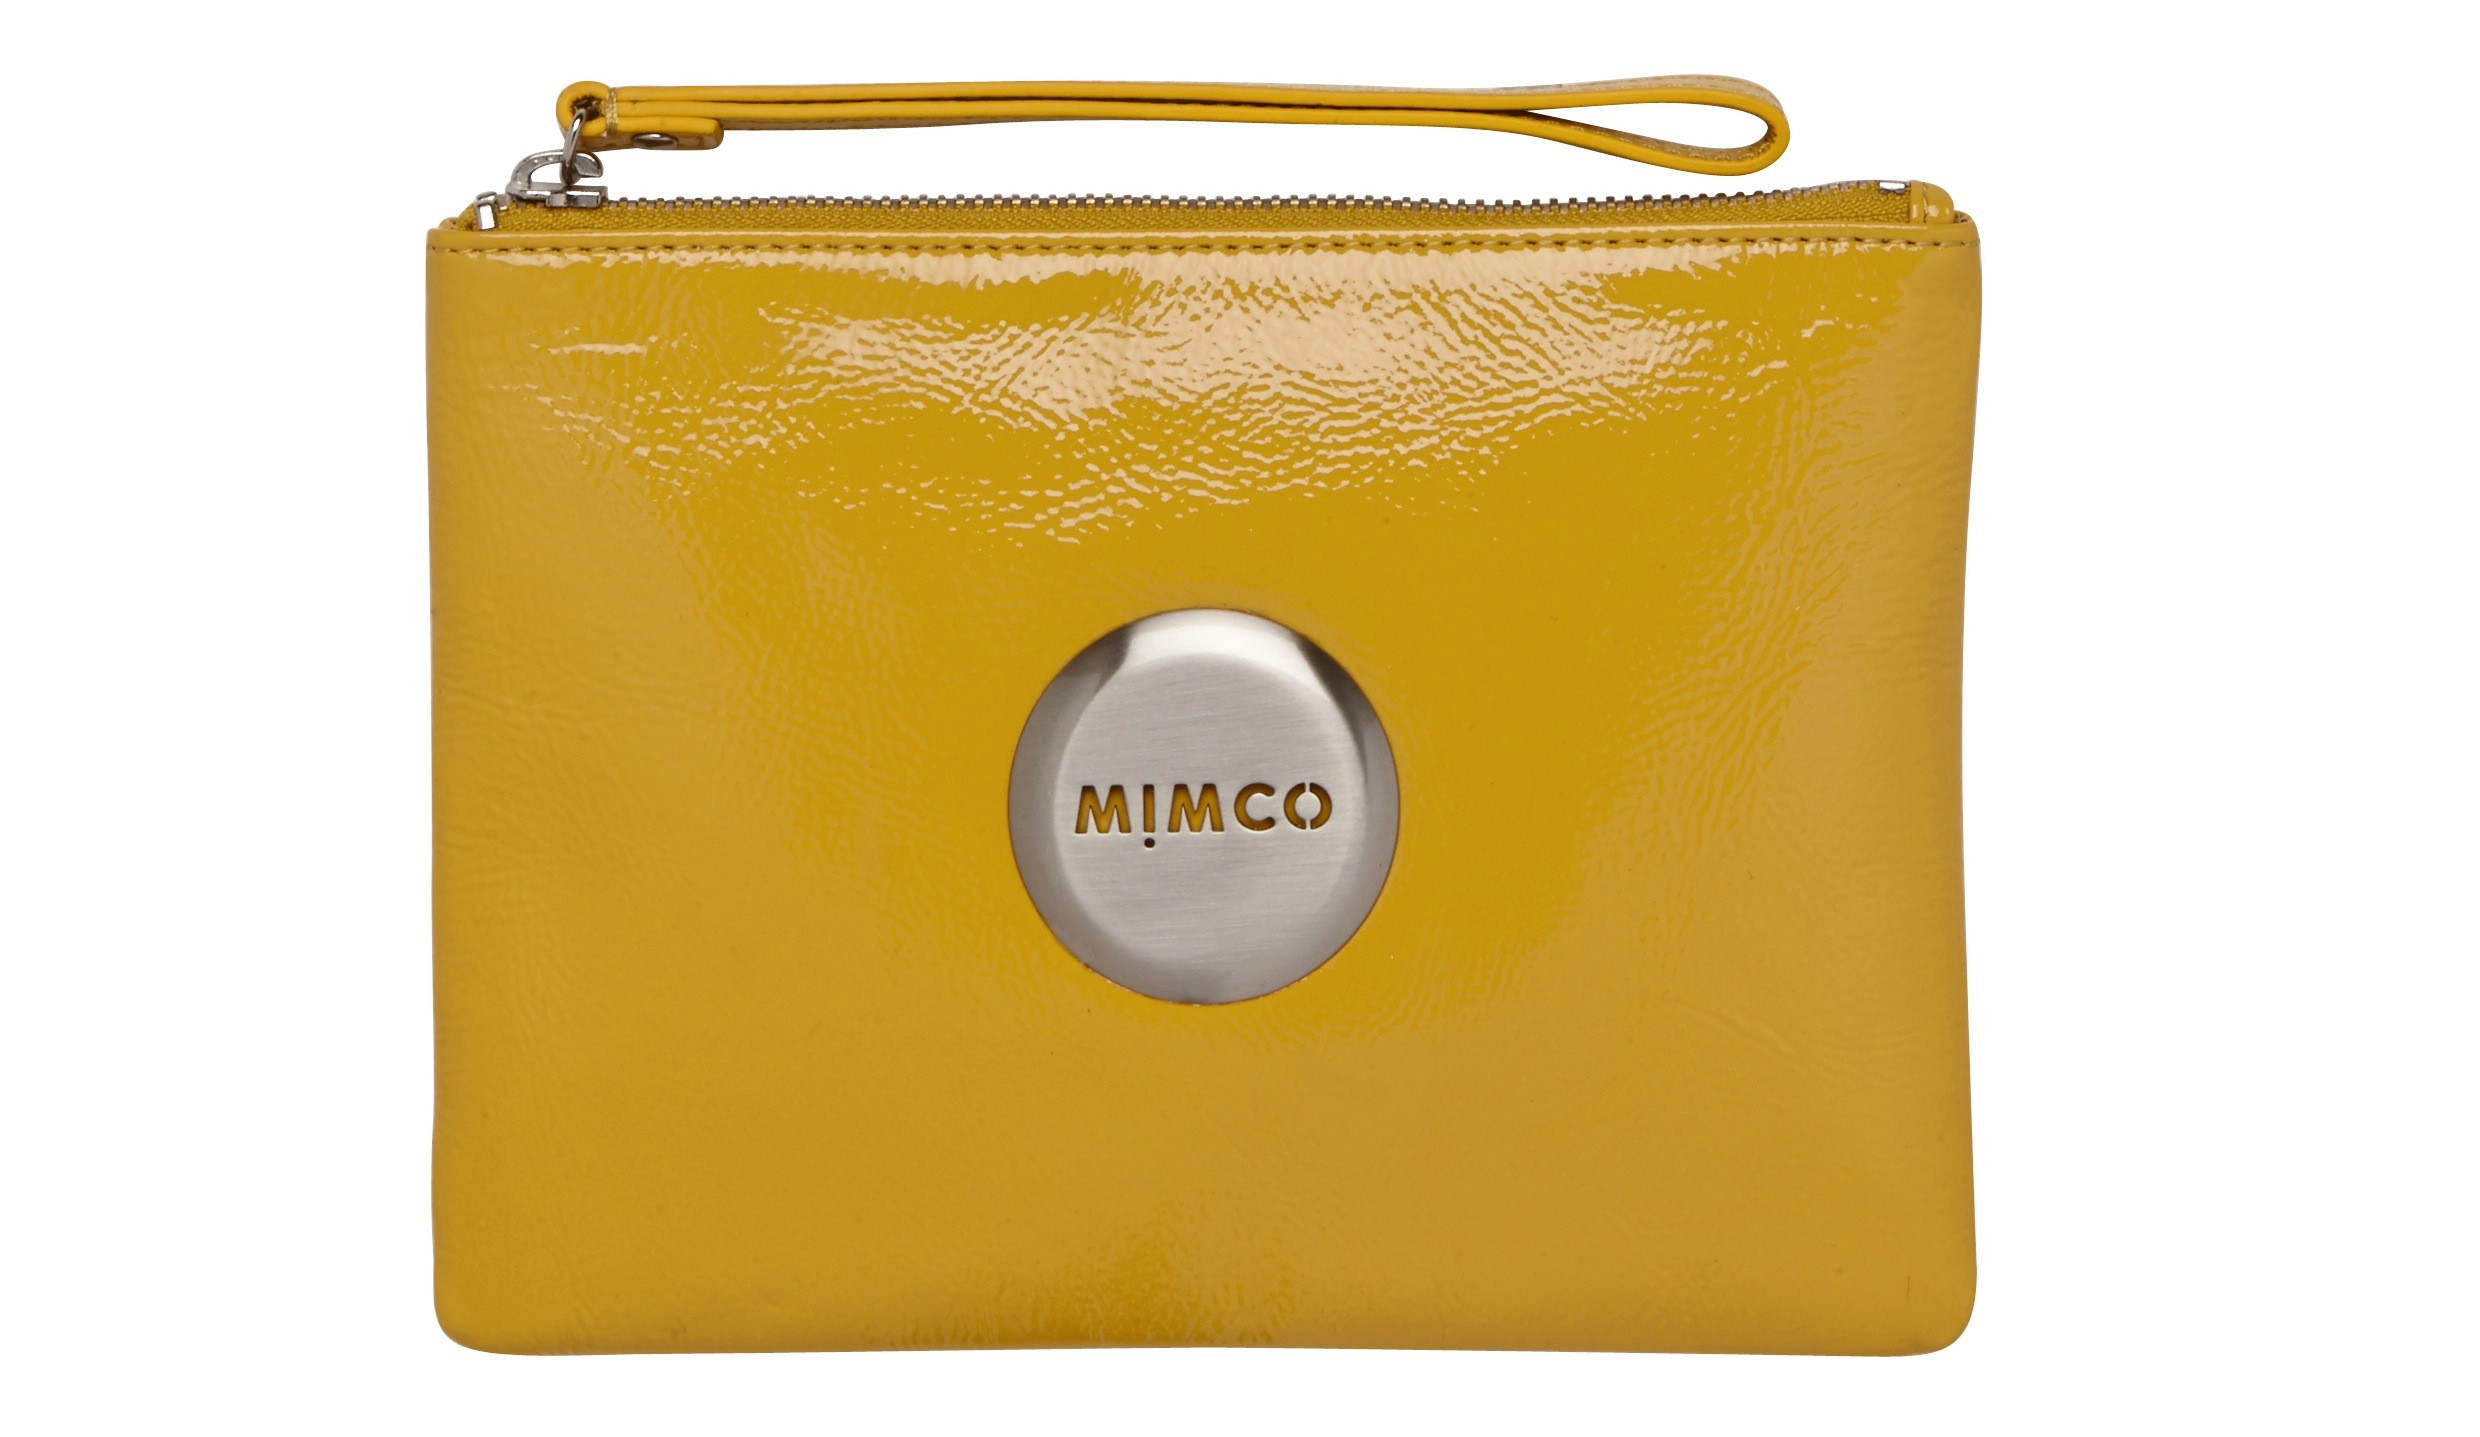 MIMCO Launches Their Spring/Summer Collection - RoXstar Earthgazer